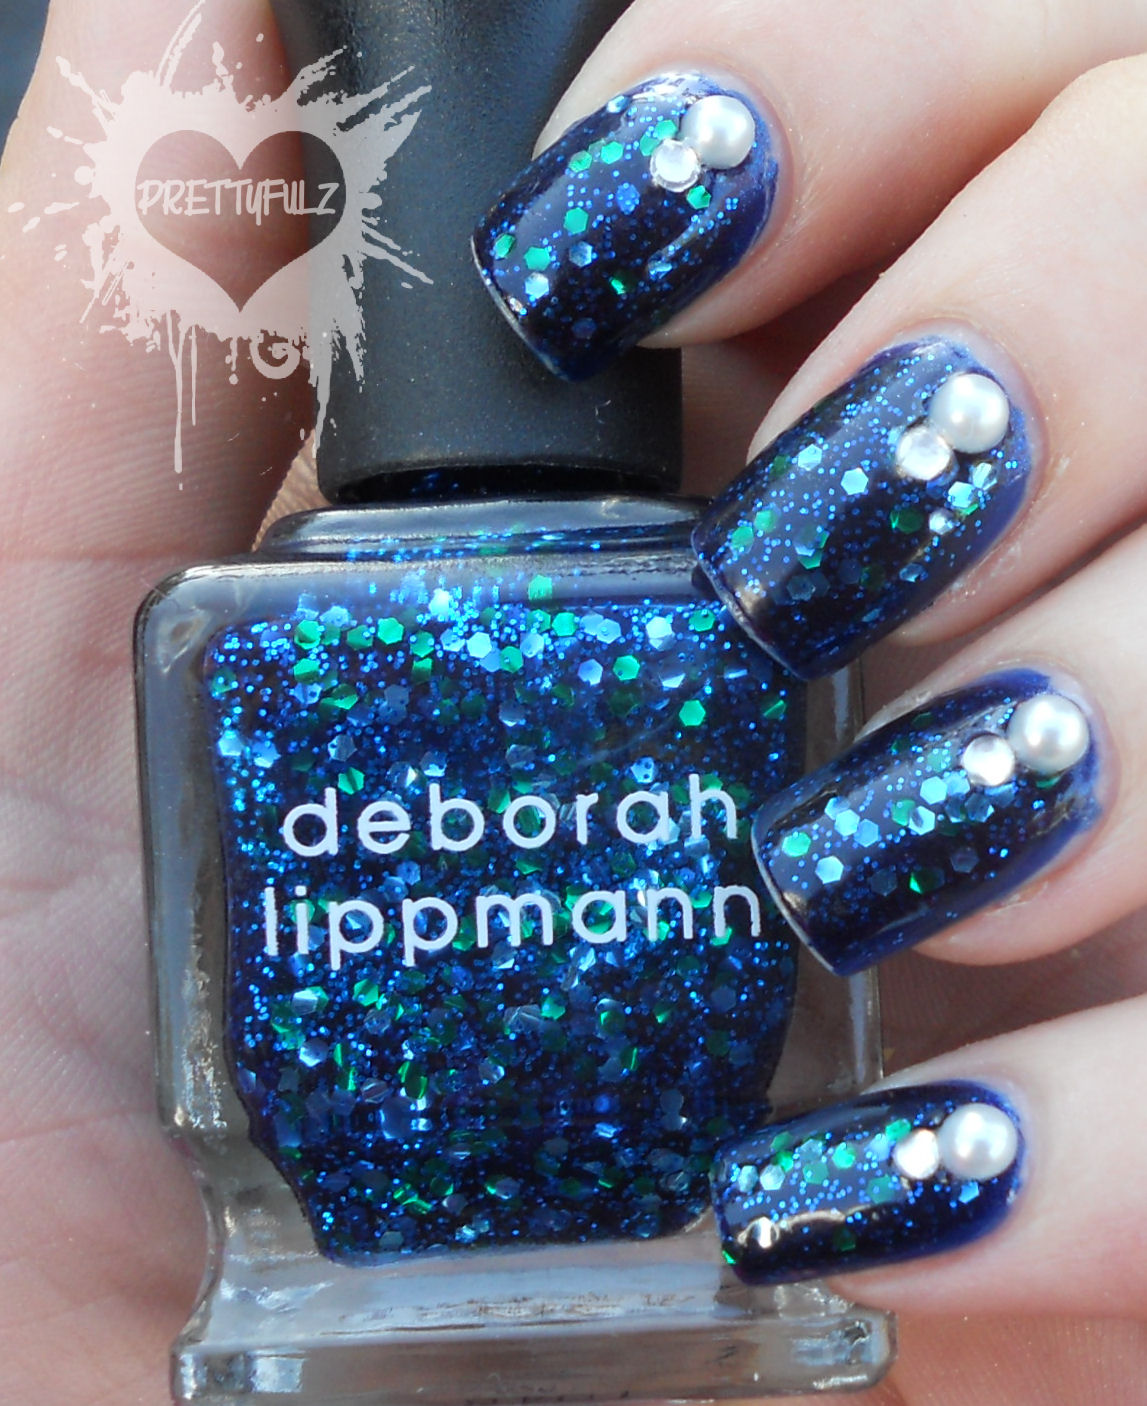 Prettyfulz Fall Nail Art Design 2011: Prettyfulz: Deborah Lippmann Across The Universe Swatch